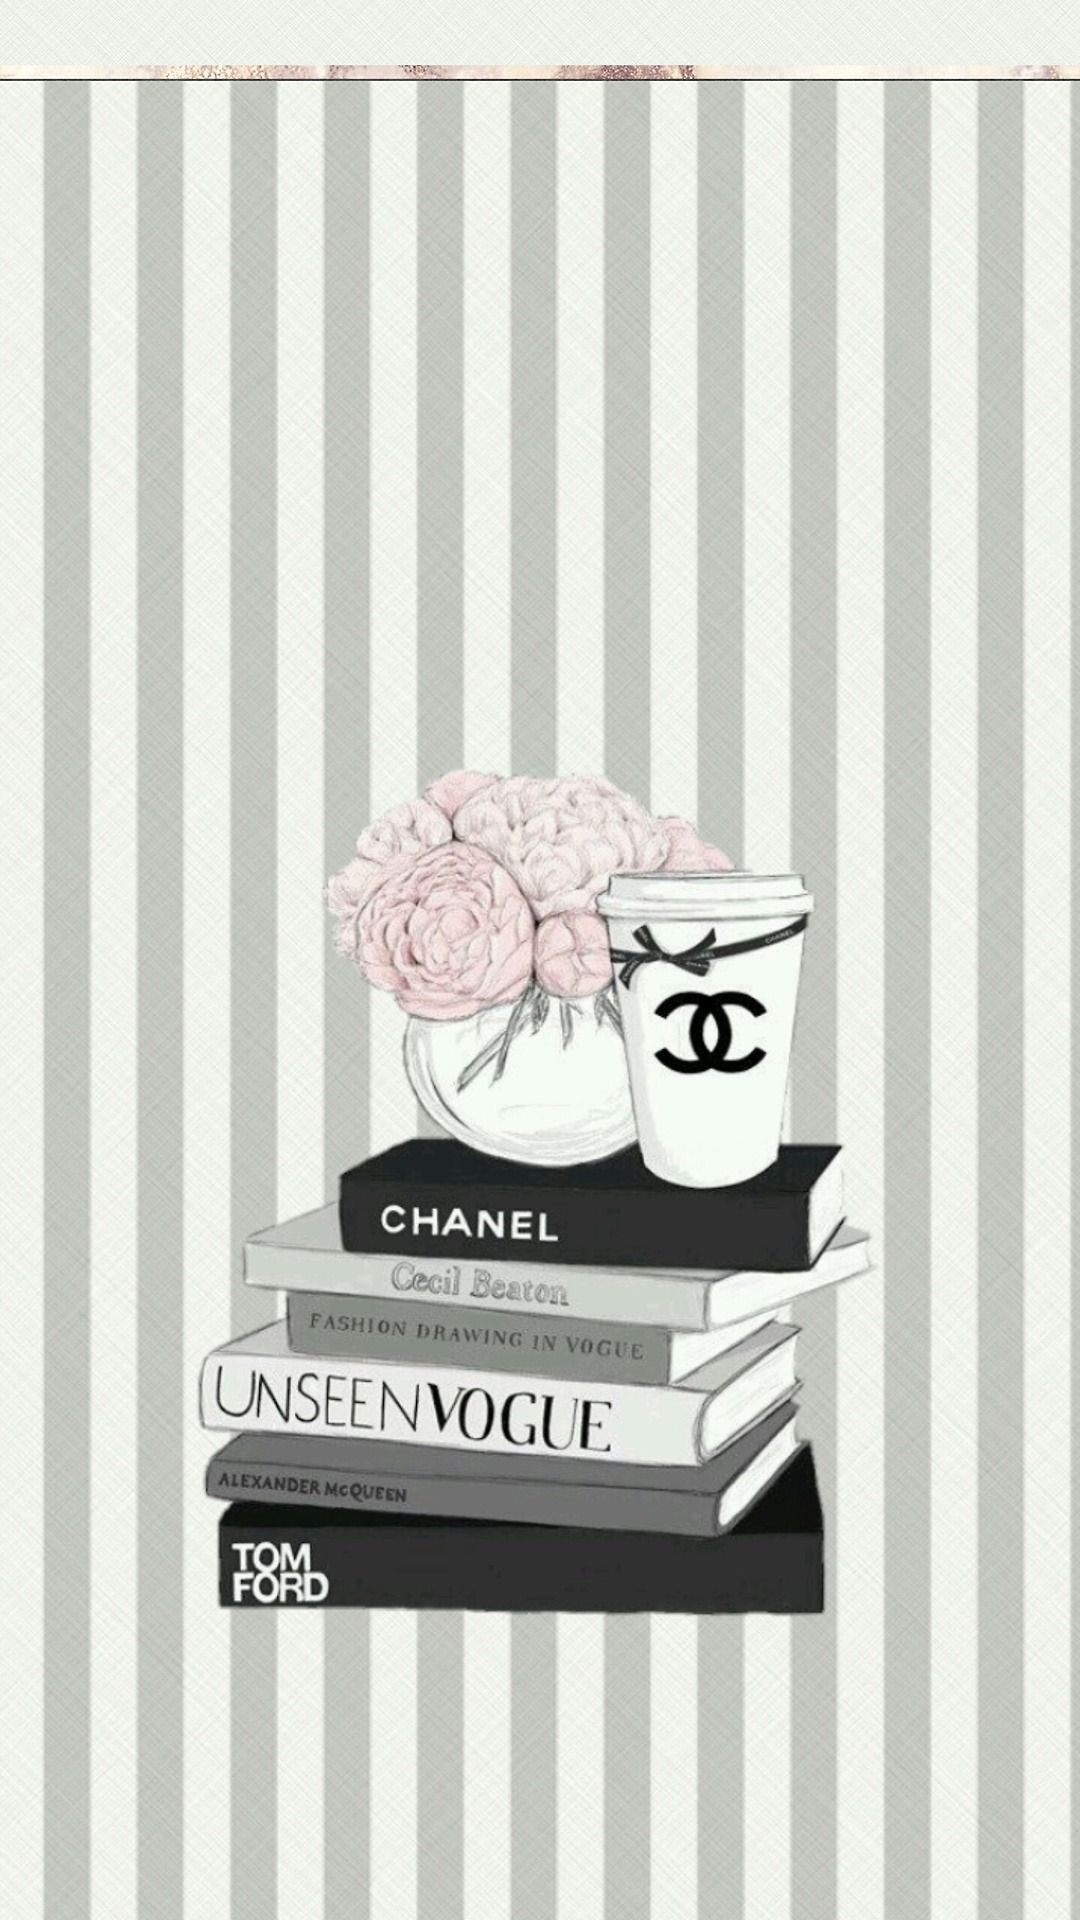 ❄WALLPAPERS❄ — Chanel wallpapers For book lovers who love to binge new novels with loads of coffeeee